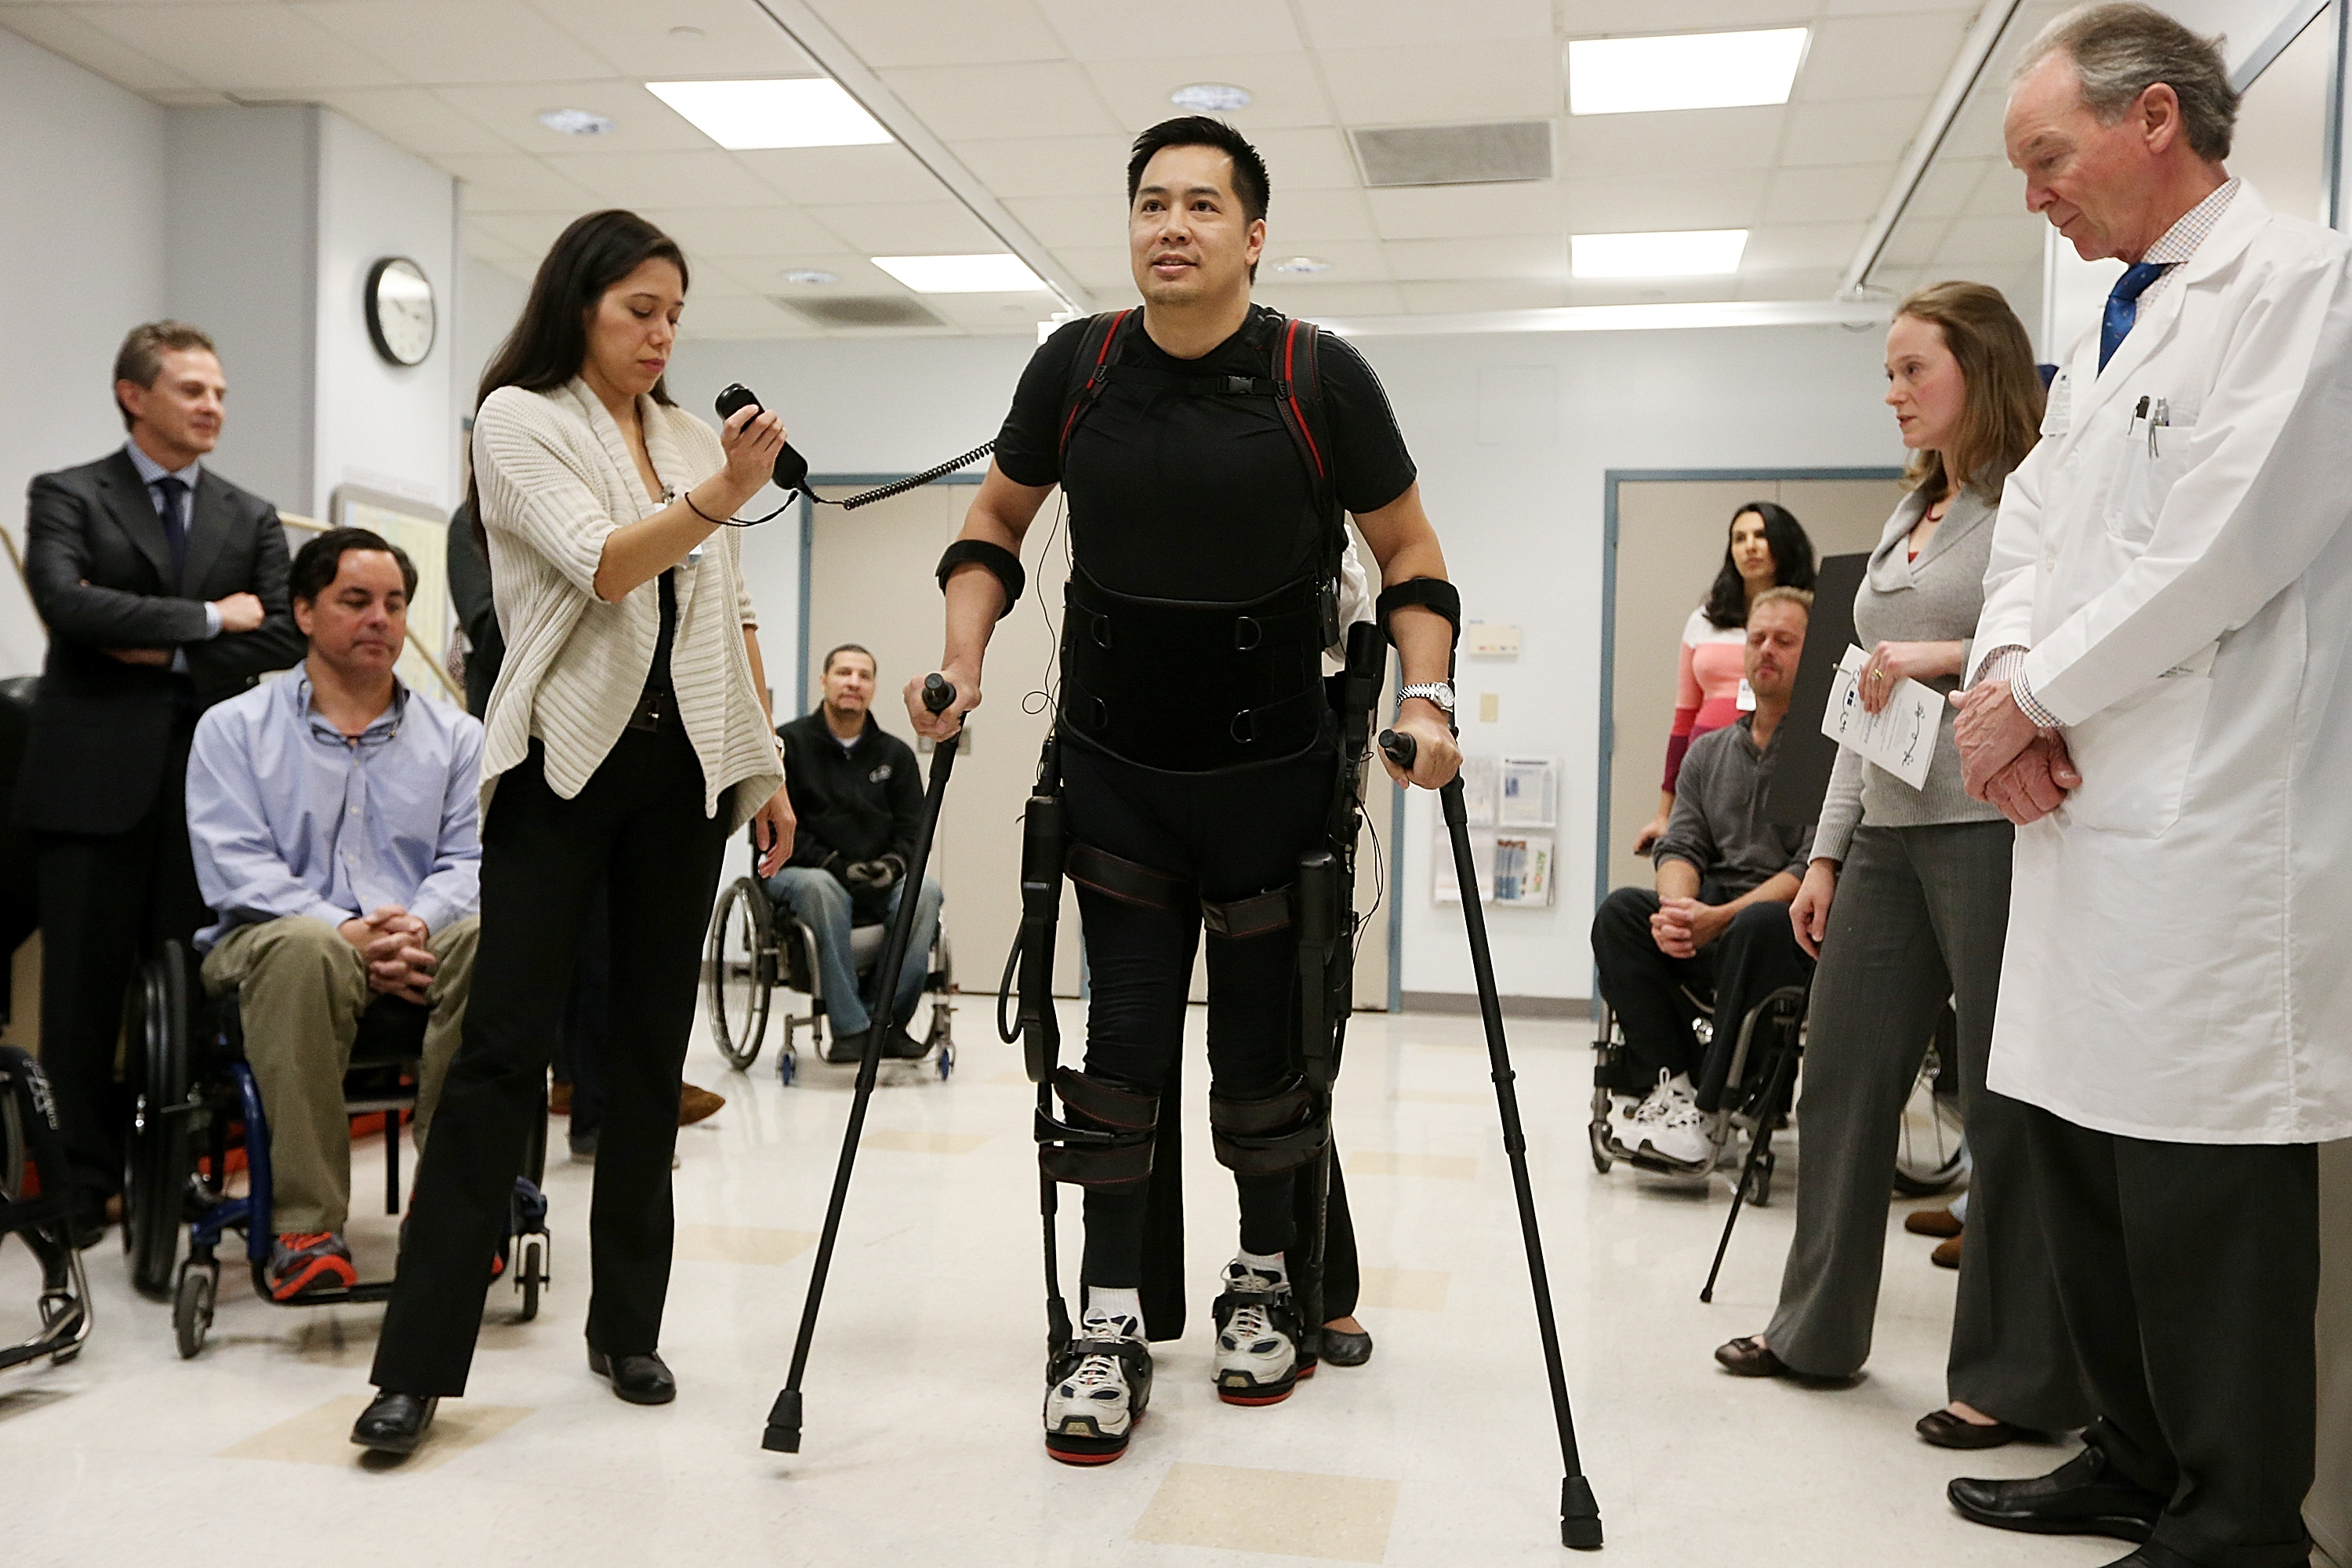 Forty three-year-old parapalegic Robert Woo walks with an exoskeleton device made by Ekso Bionics during a demonstration at the opening of the Rehabilitation Bionics Program at Mount Sinai Rehabilitation Center on December 6, 2012 in New York City. Woo is an architect who was paralyzed from the hips down during a construction accident and thought he would never walk again. The new strap-on exoskelton uses motors and sensors to physically move the legs. (Mario Tama/Getty Images)